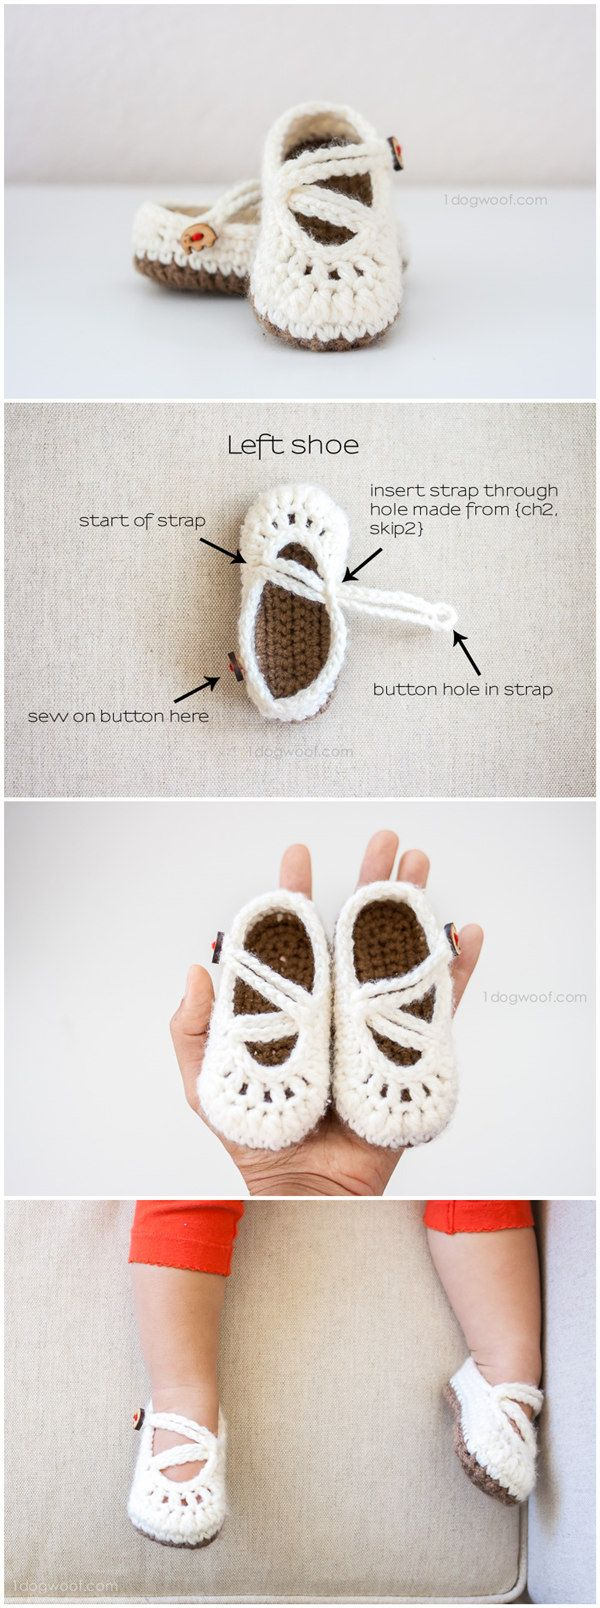 Double Strapped Baby Mary Janes Crochet Pattern | Ranas | Pinterest ...